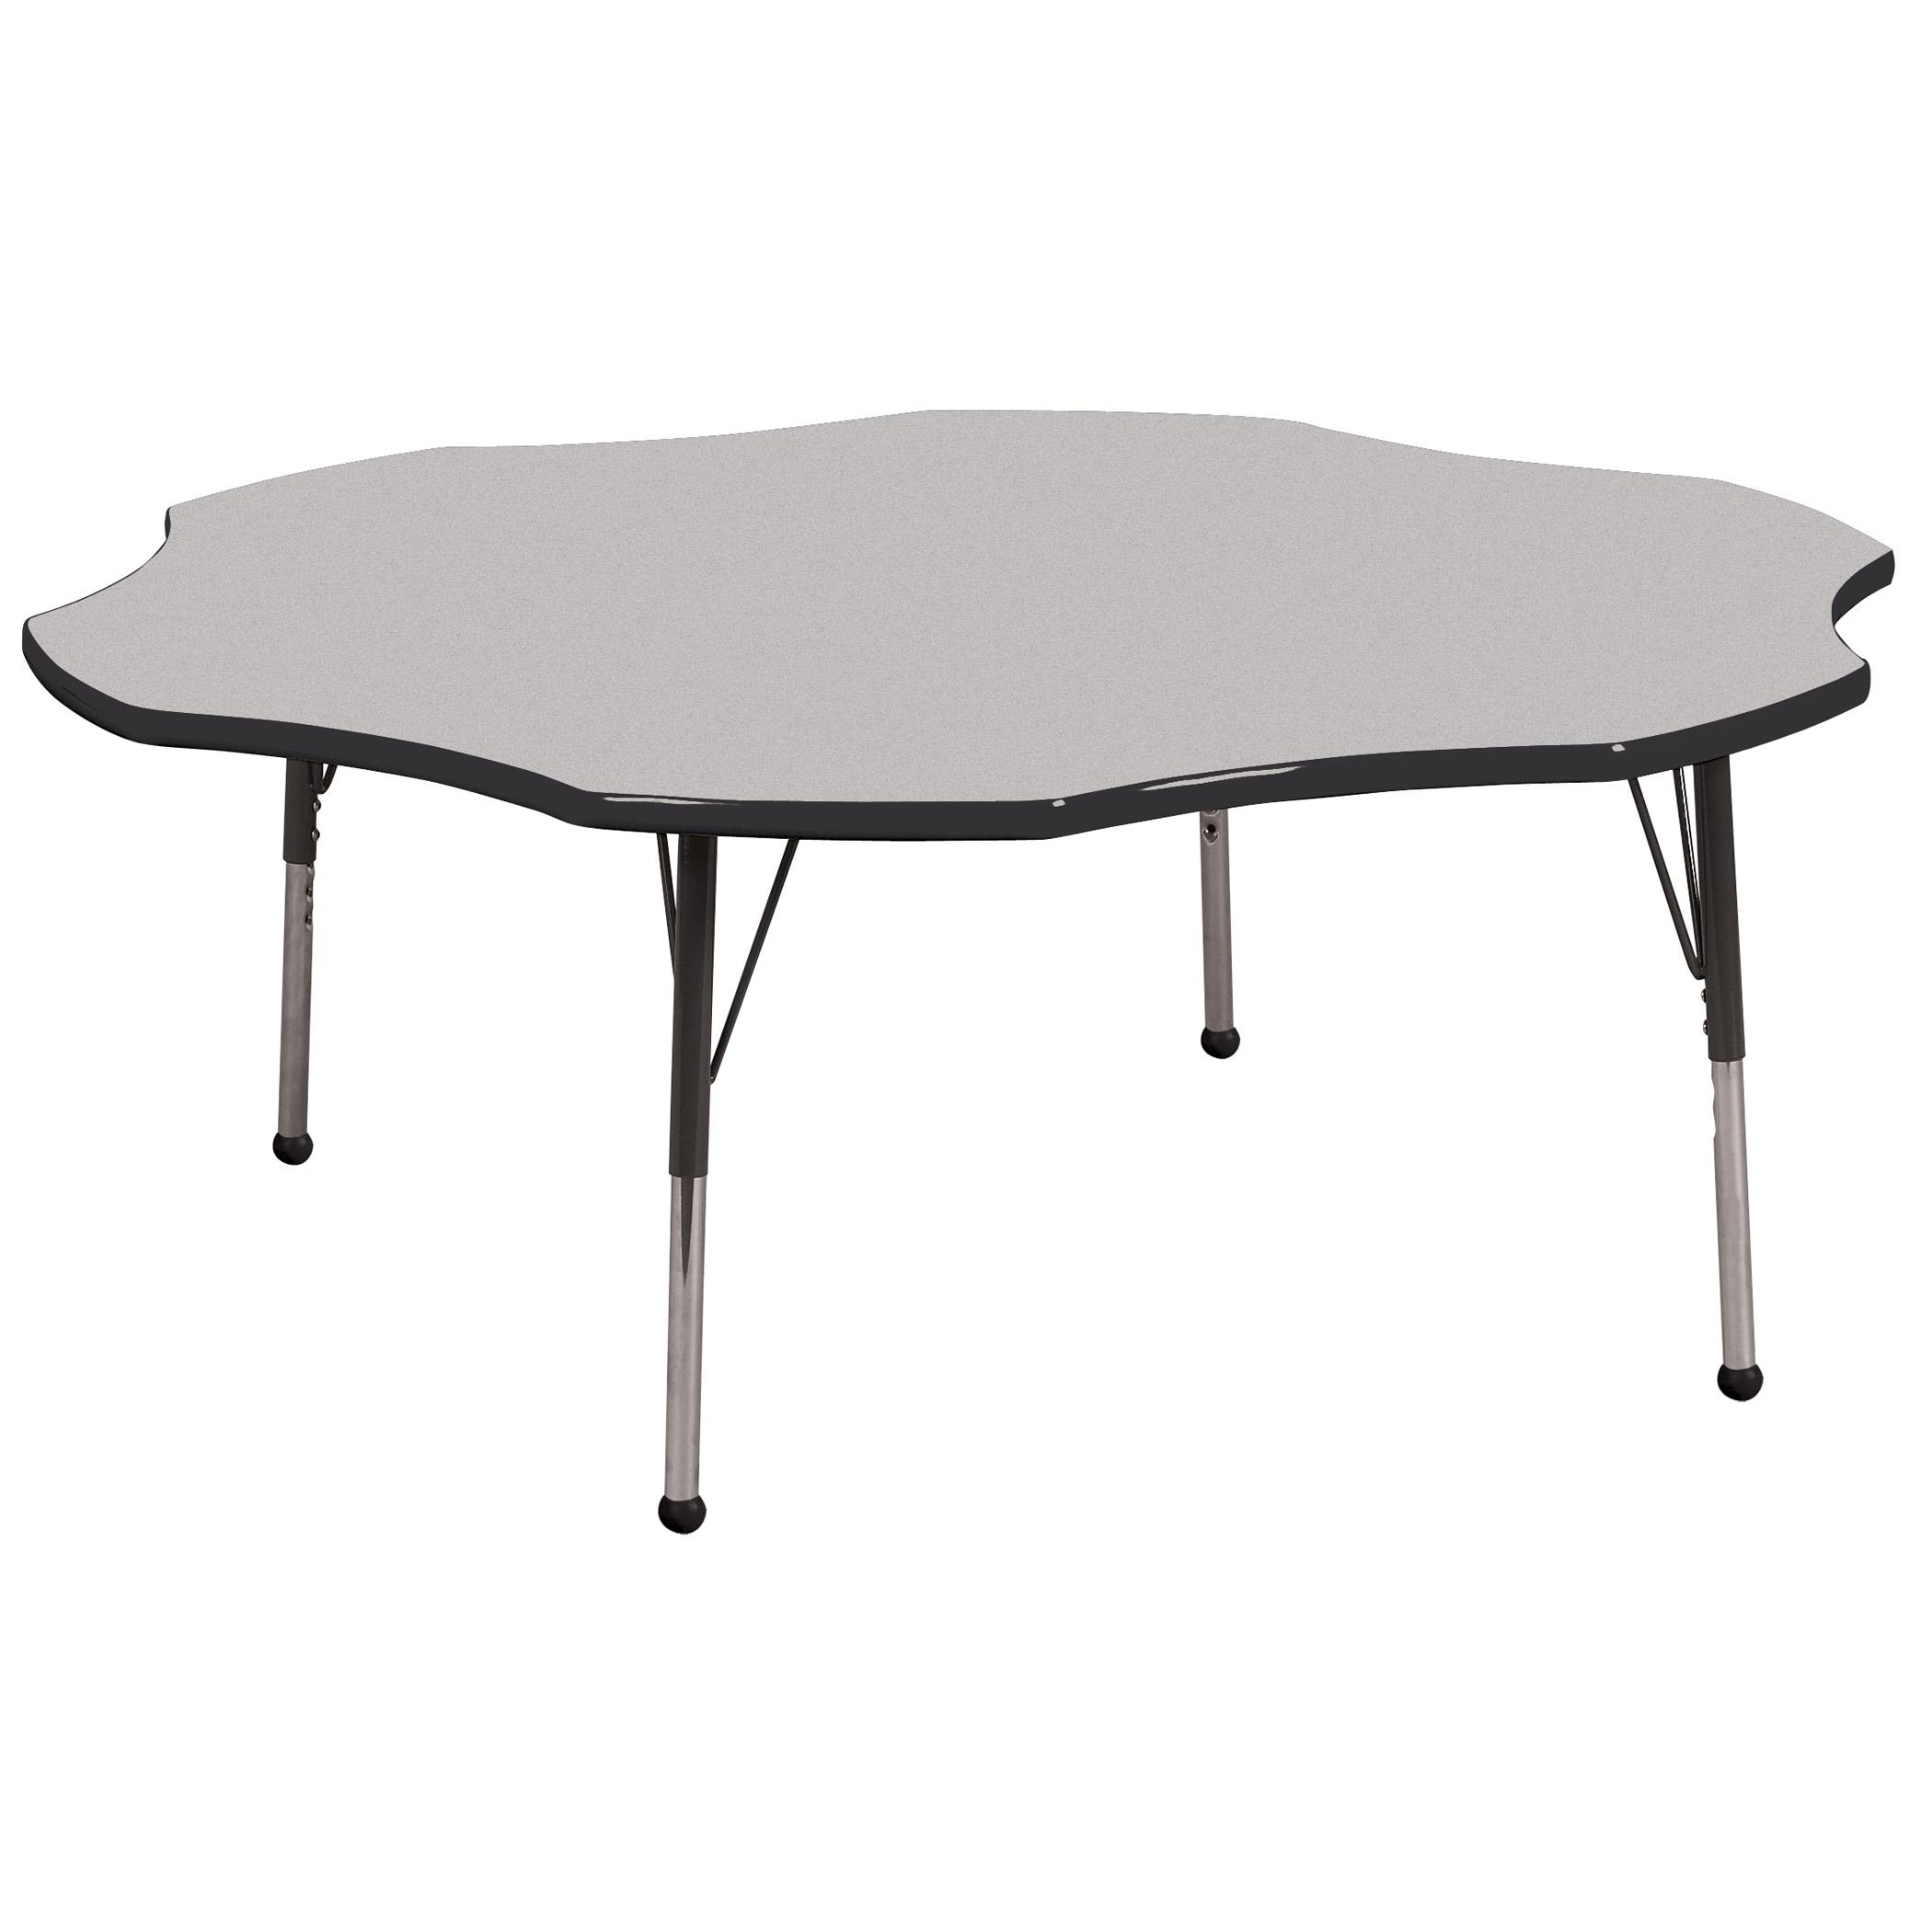 ECR4Kids 60'' Flower Shaped Adjustable Activity Table in Gray